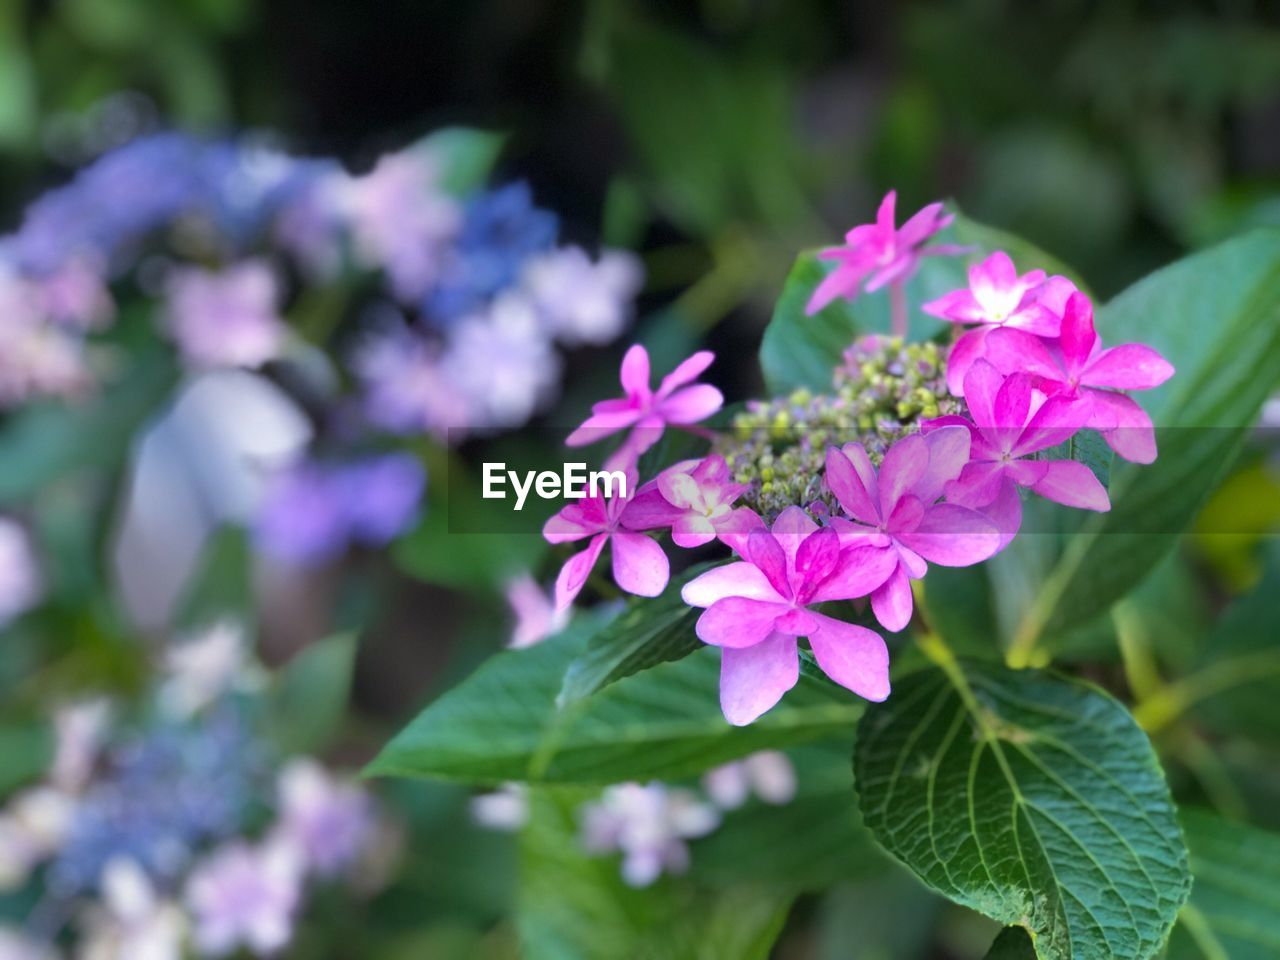 flowering plant, flower, plant, freshness, vulnerability, beauty in nature, petal, fragility, growth, pink color, inflorescence, close-up, plant part, flower head, leaf, nature, day, focus on foreground, no people, outdoors, purple, bunch of flowers